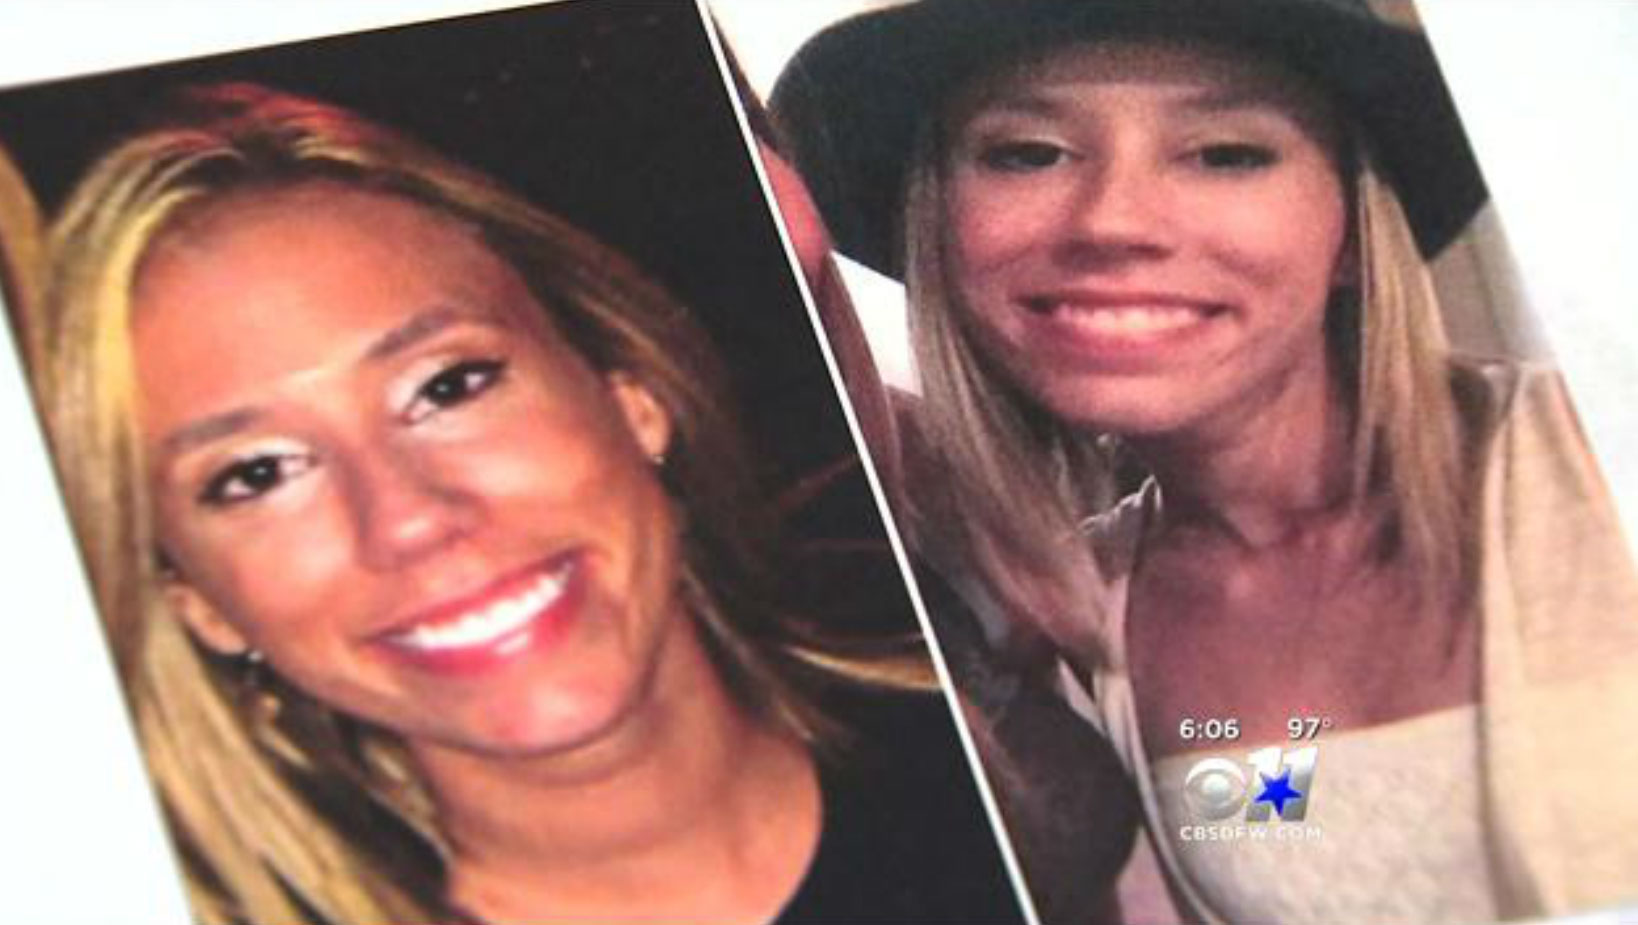 Christina Morris case: Police confirm remains are those of Texas